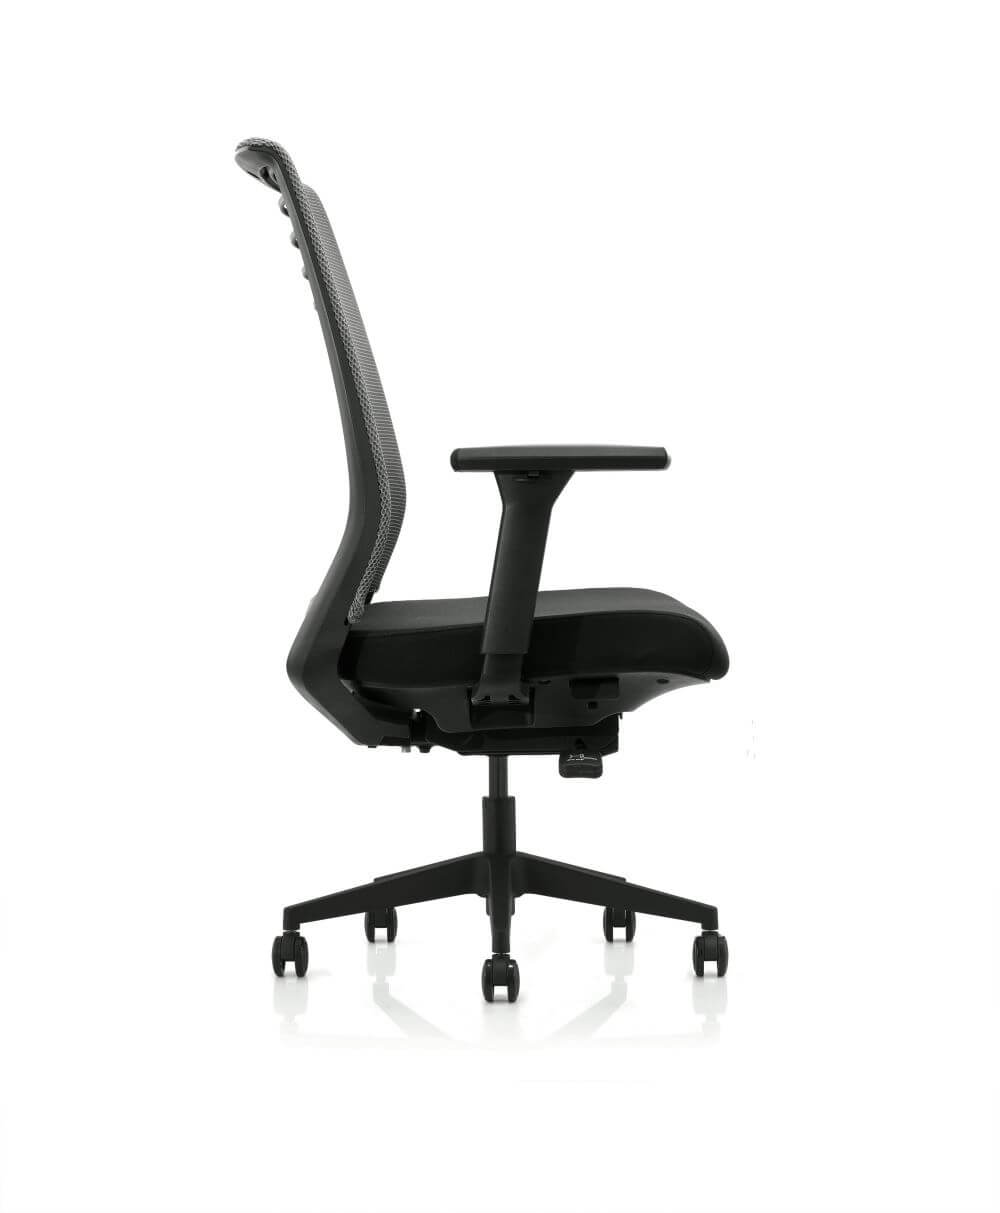 Horizon in black with mesh back, armrests, 5 star base on castors, side view